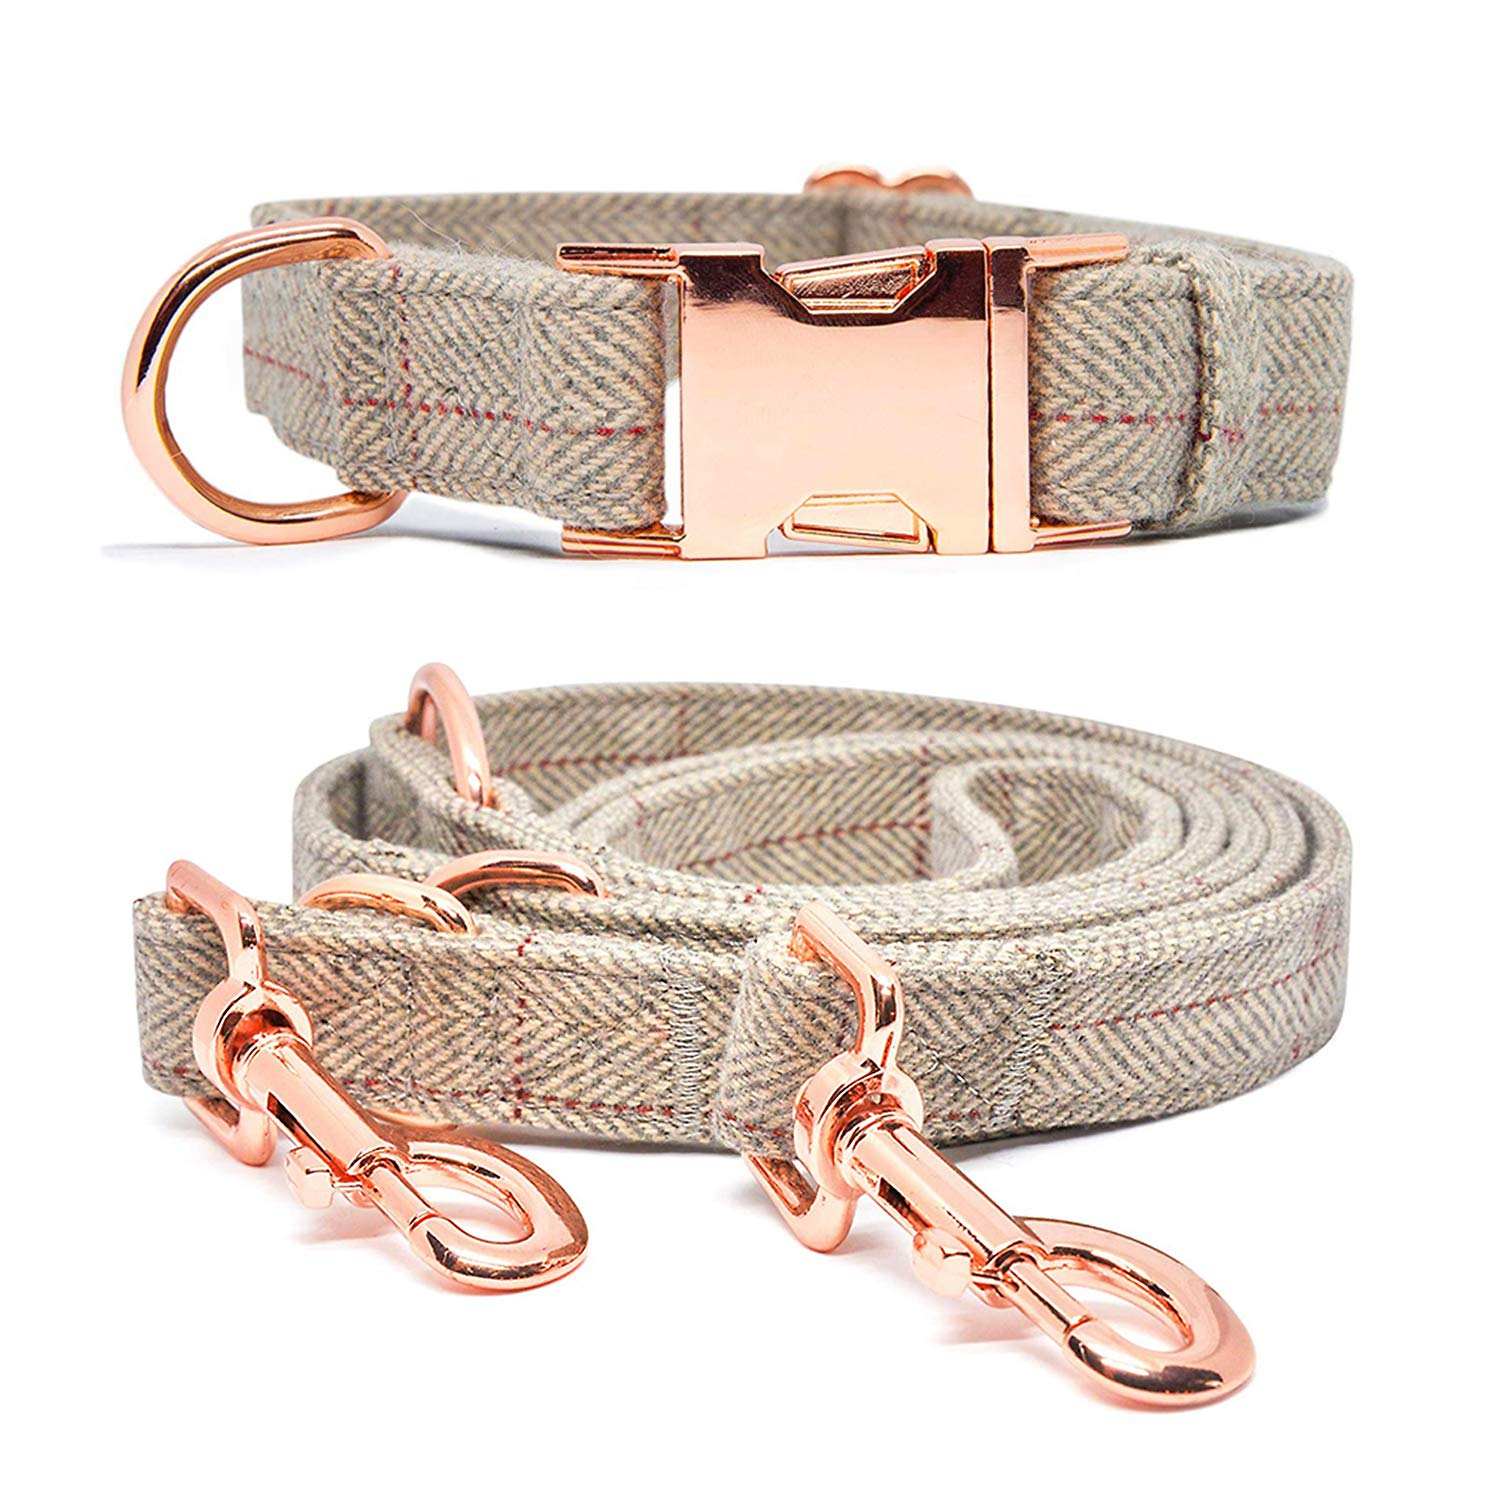 KUYOUGOU Heavy Duty Dog Collar (15.7''-24'') and Leash (6.6'), Stylish Design with Rose Gold Set, Cotton, 3 Adjustable Lengths, for Small to Large Dogs